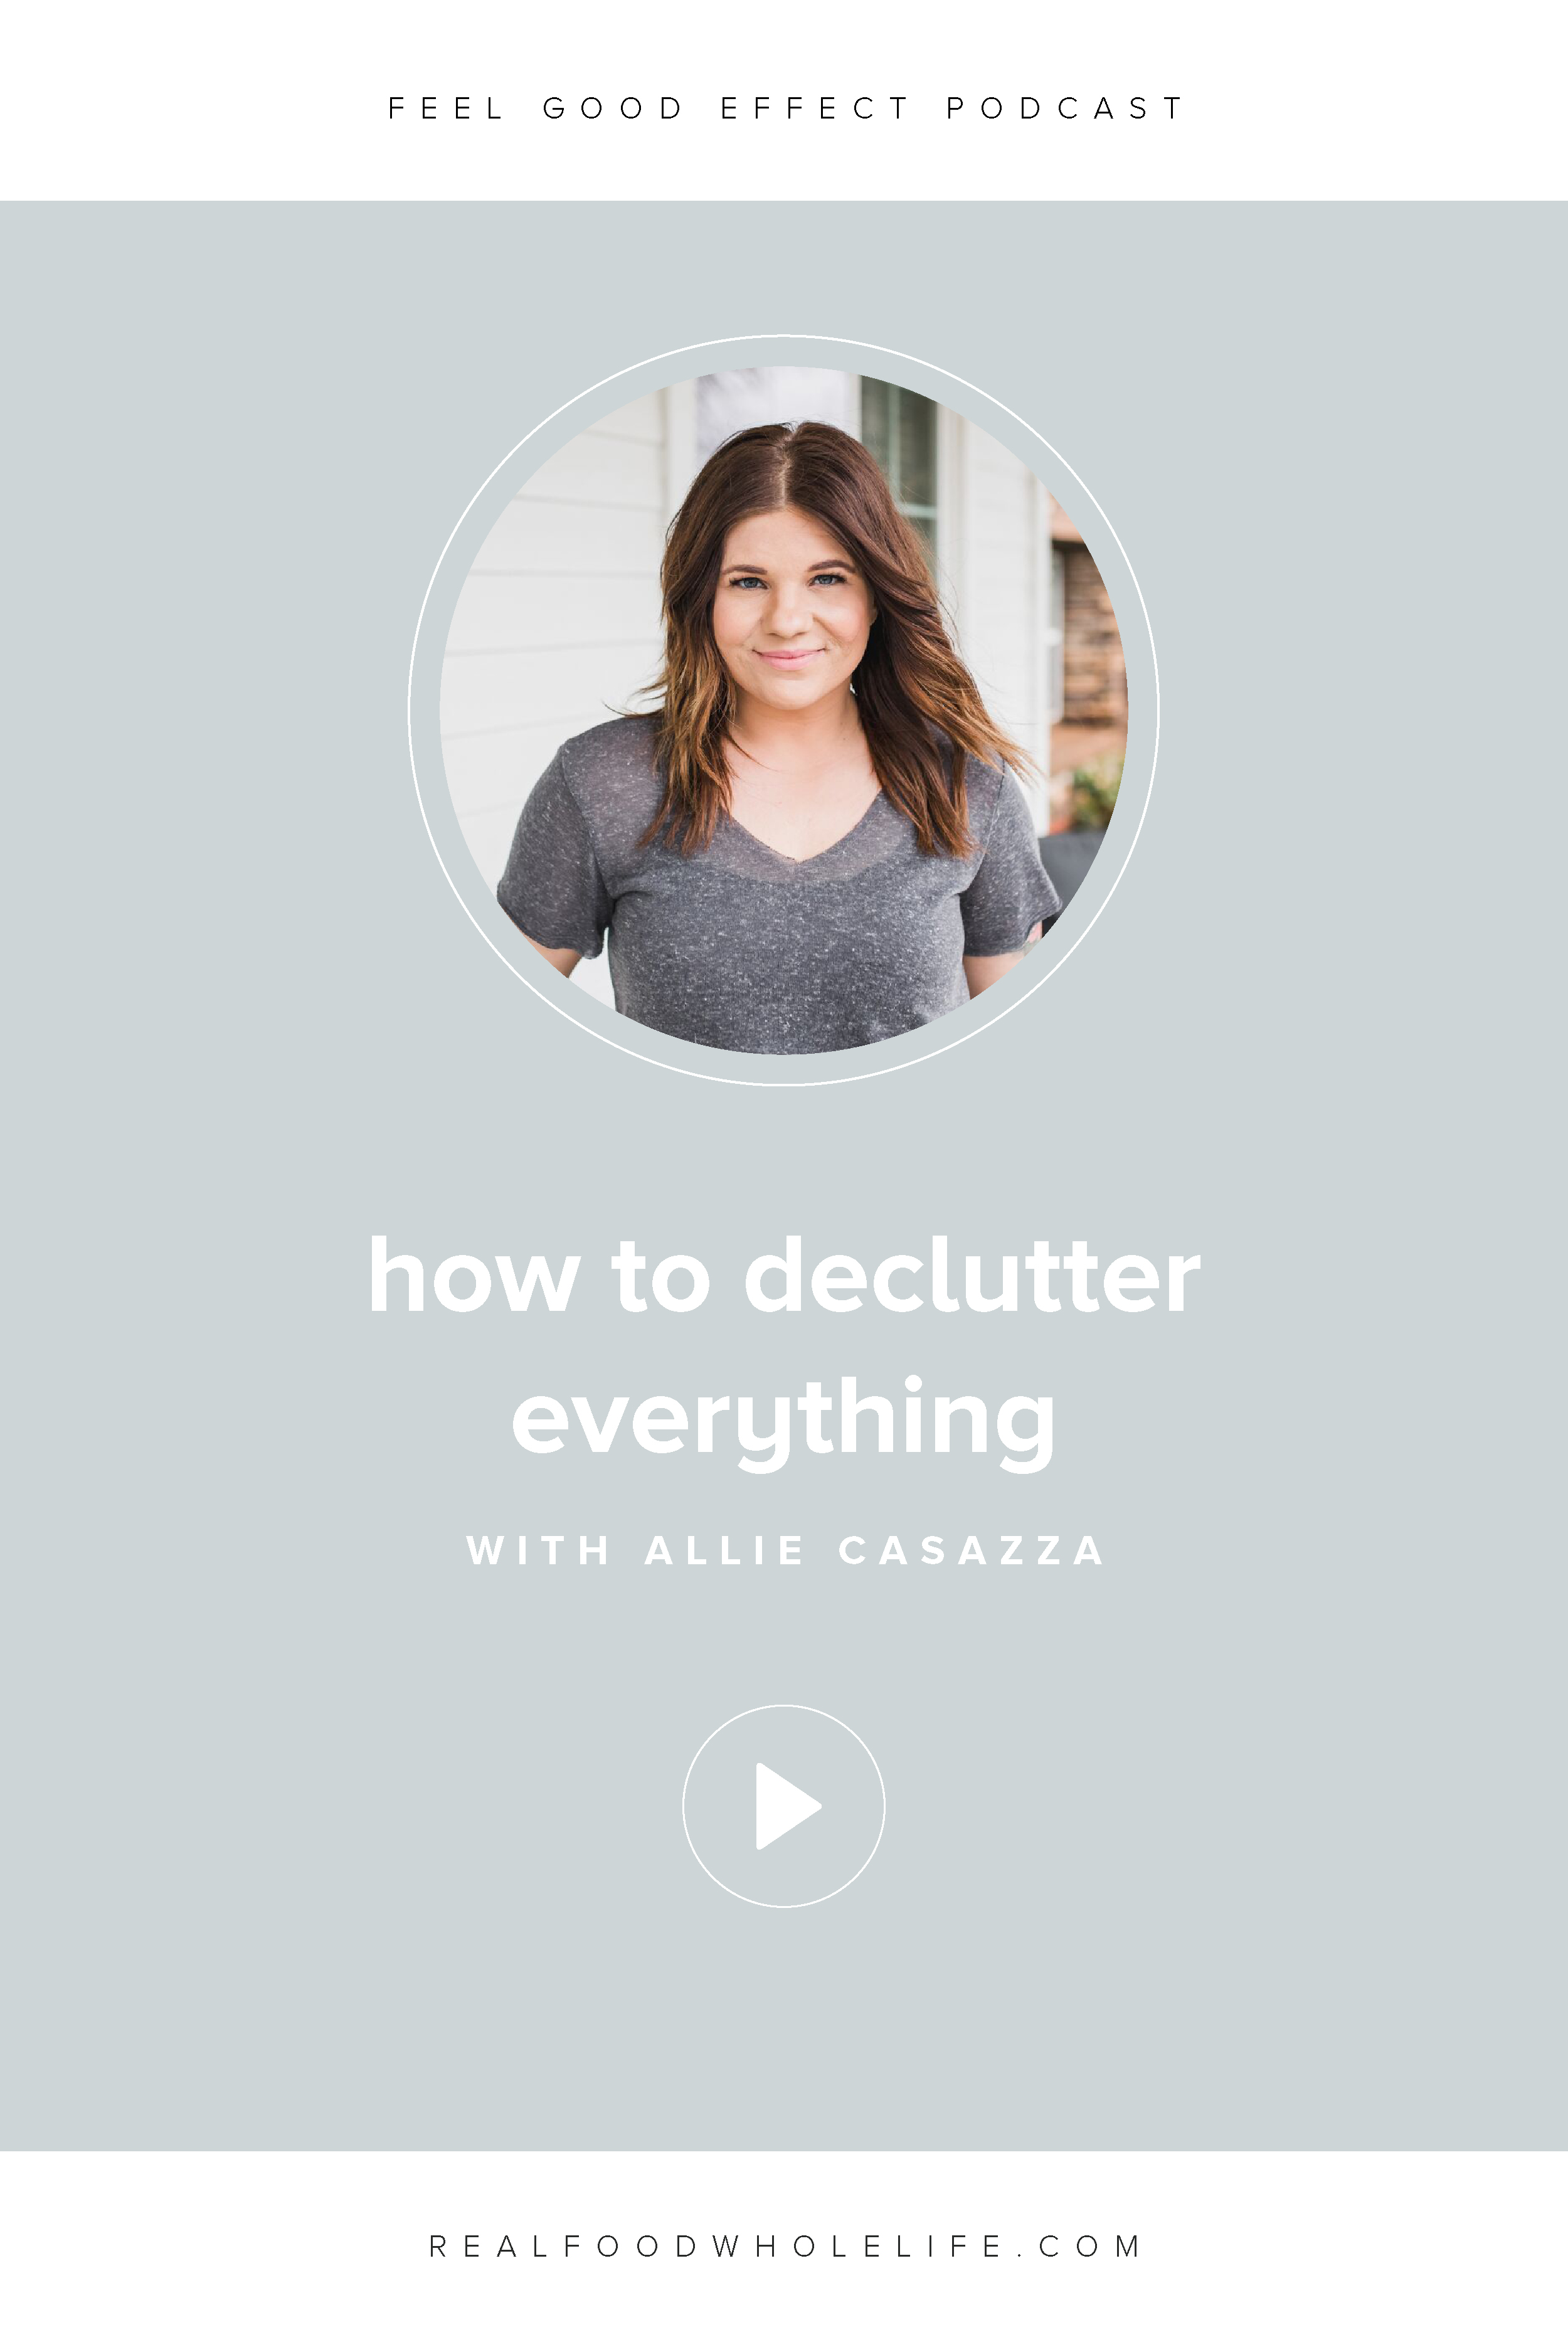 Are you ready to declutter everything? Allie Casazza is going to help you do just that and make it work in real life. #realfoodwholelife #feelgoodeffect #podcast #wellnesspodcast #declutter #cleanliving #gentle #gentleisthenewperfect #purposeshow #organizedhome #clean